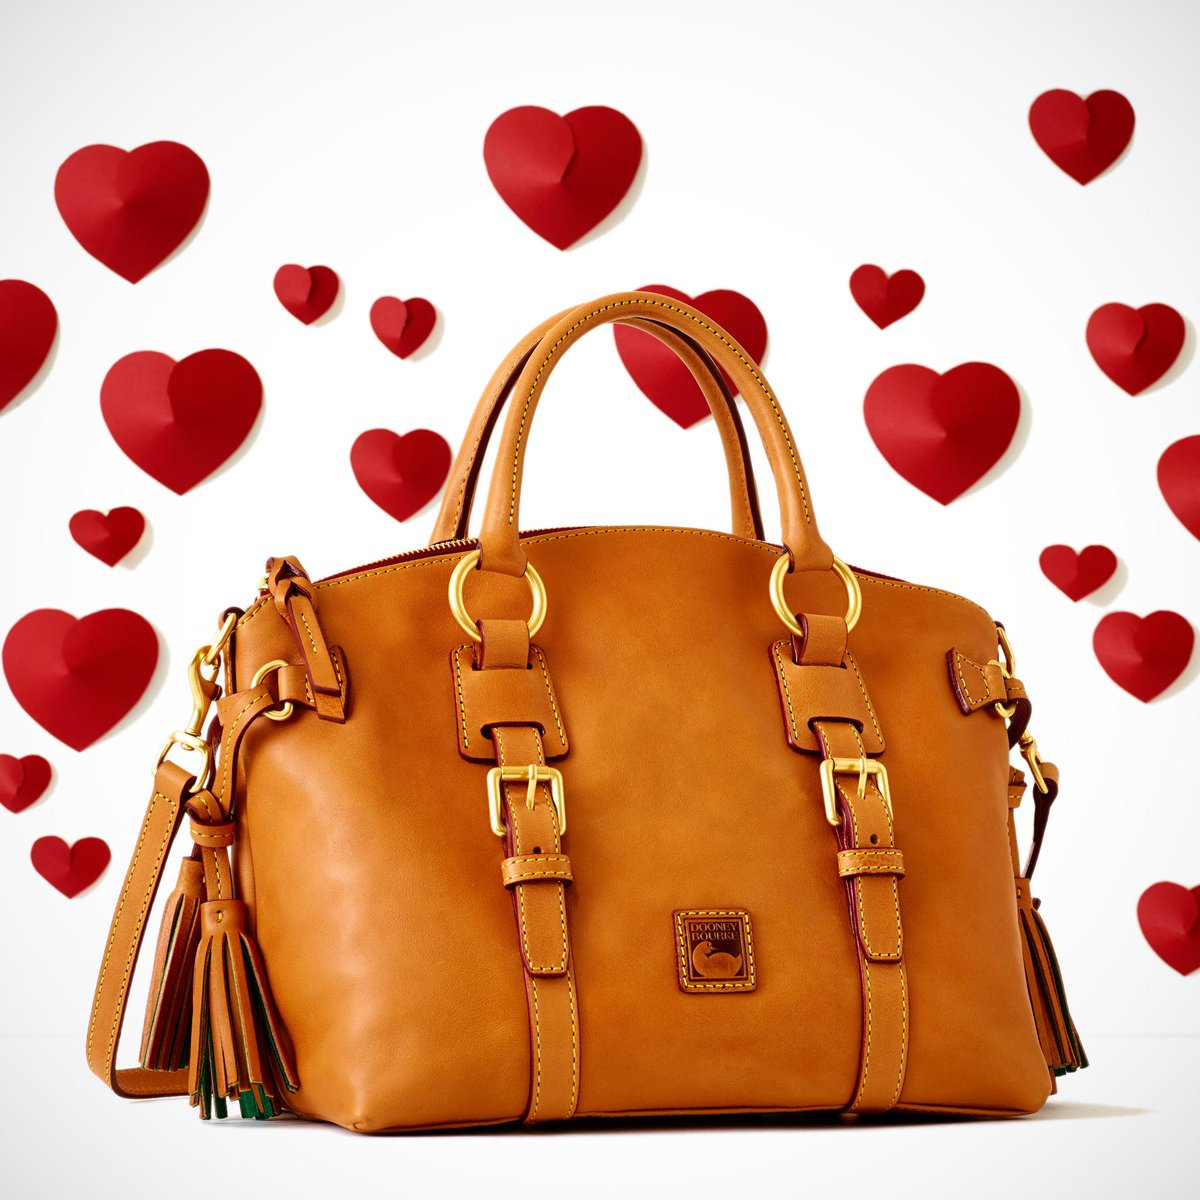 LOVE IS IN THE AIR - Browse our 2015 Valentine's Day Gift Guide at http://t.co/4dvzFhTVK6 http://t.co/OGcRqch9yf